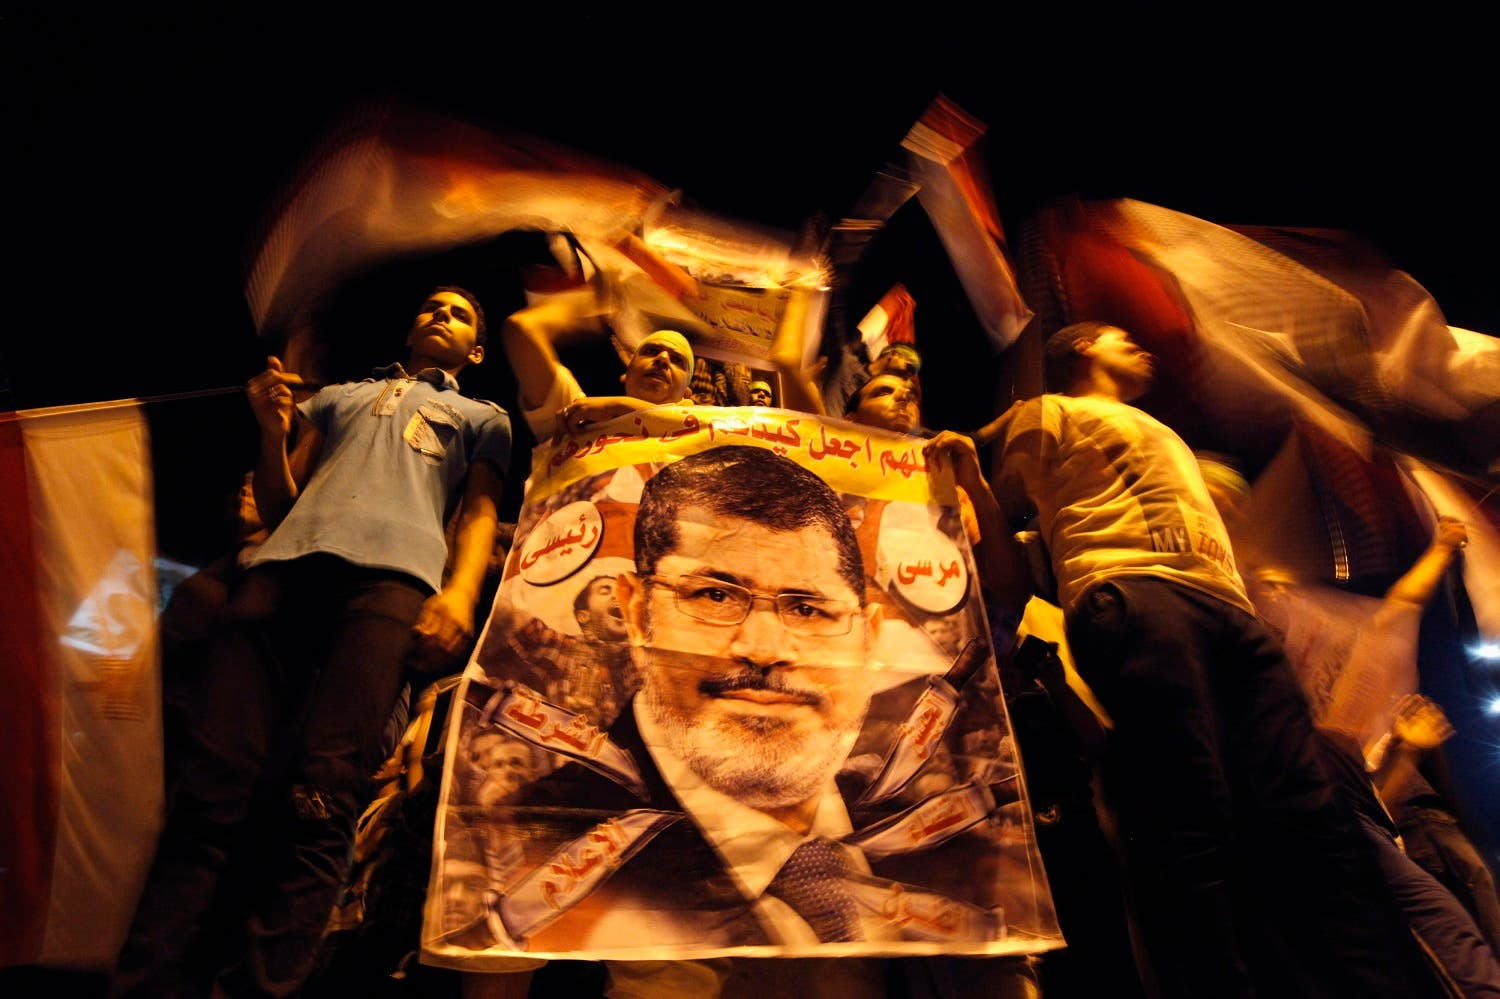 Members of the Muslim Brotherhood and supporters of deposed Egyptian President Mohamed Mursi hold a banner with his picture, in Cairo July 12, 2013. (Reuters)